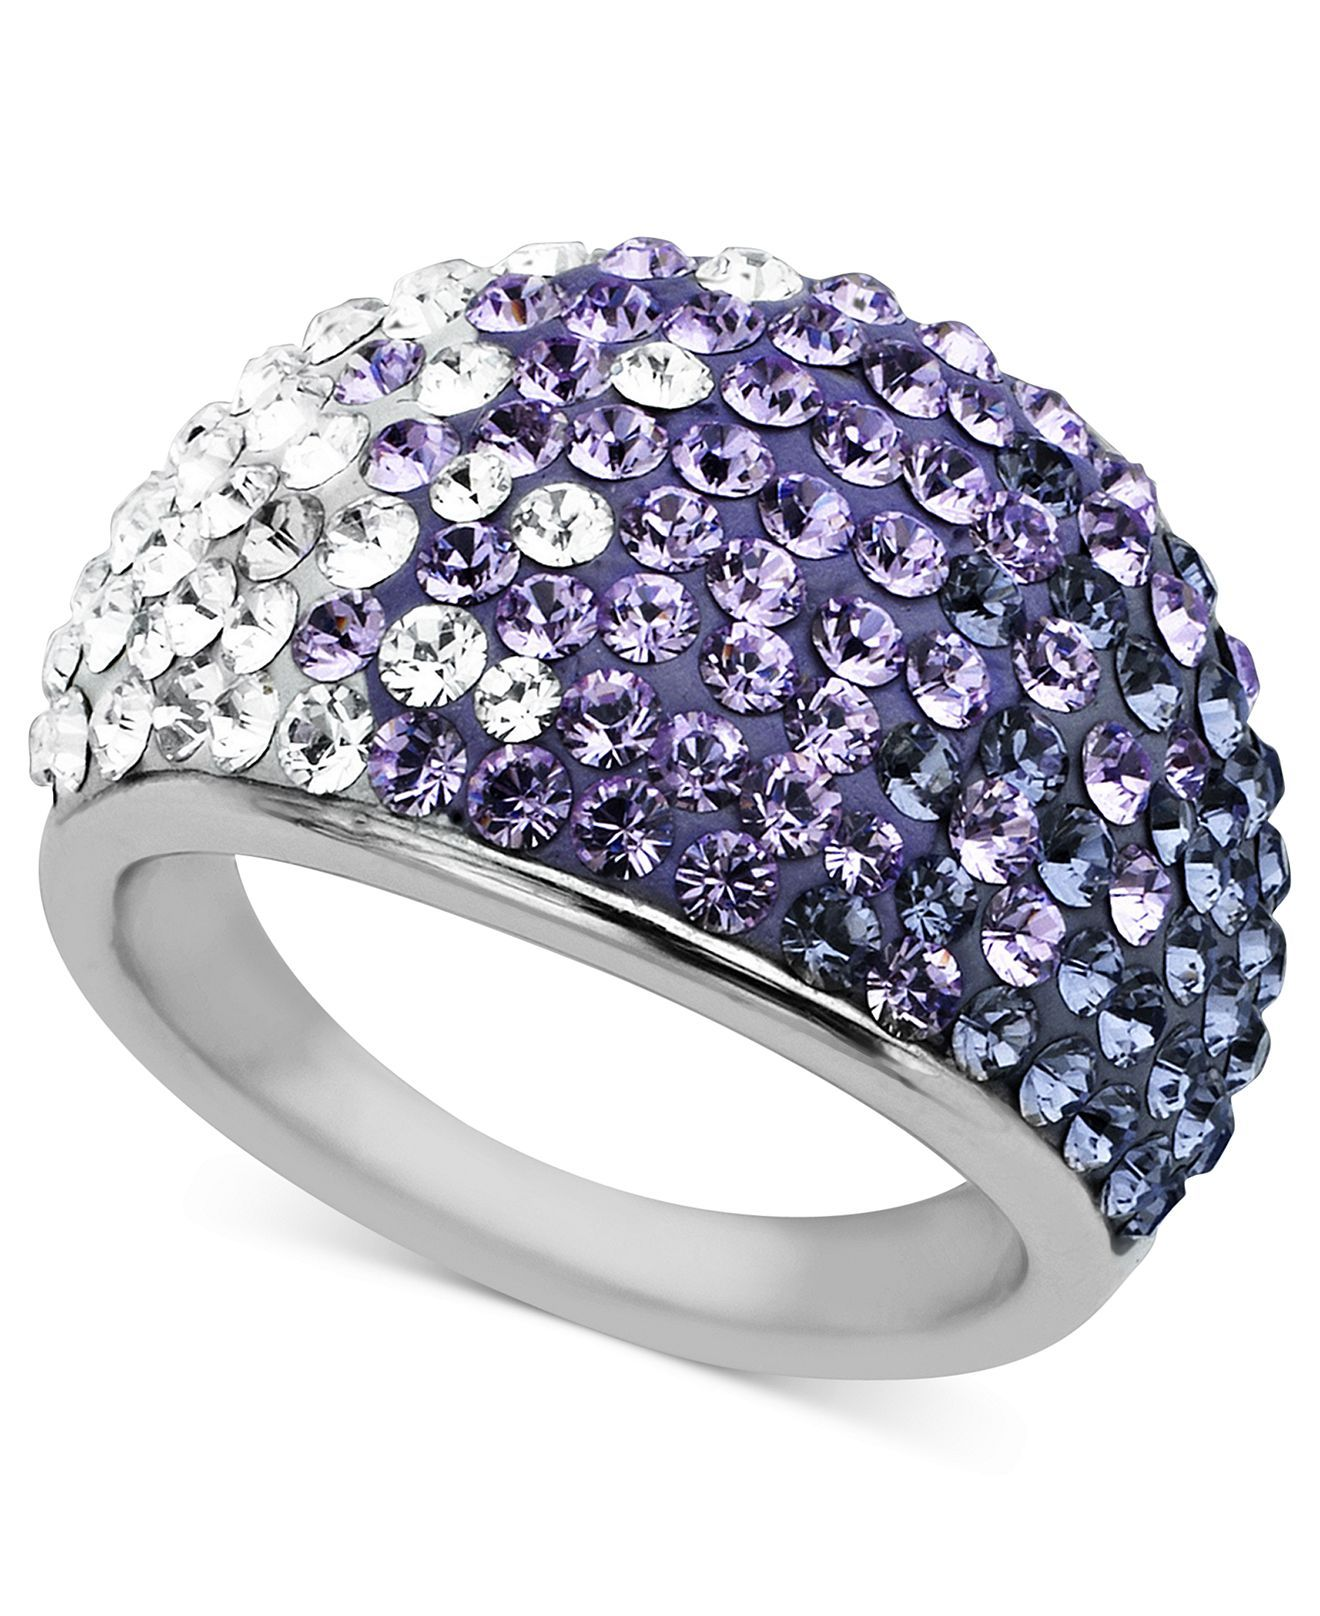 7531438247e97 Cocktail ring | Grab my Credit Card | Silver rings, Jewelry ...